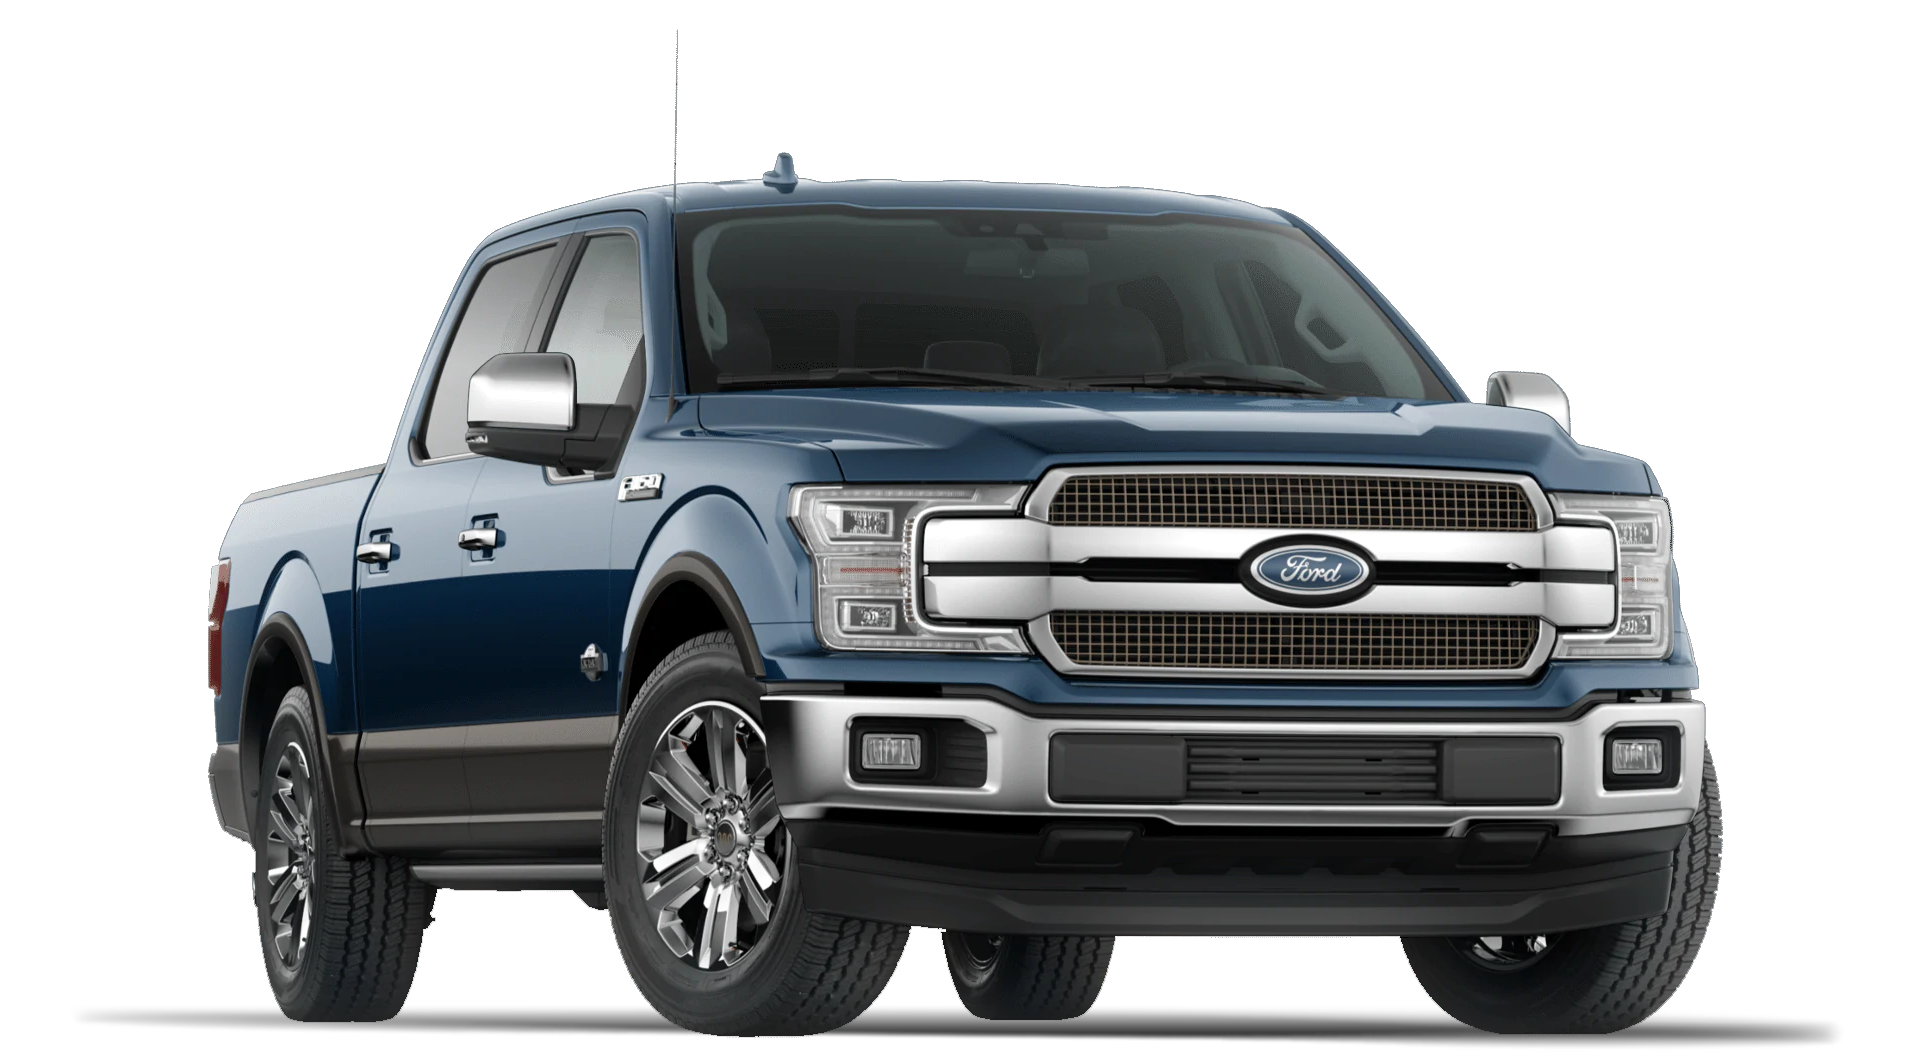 2020 Ford F150 King Ranch Super Crew Cab in Blue Jeans Exterior Color